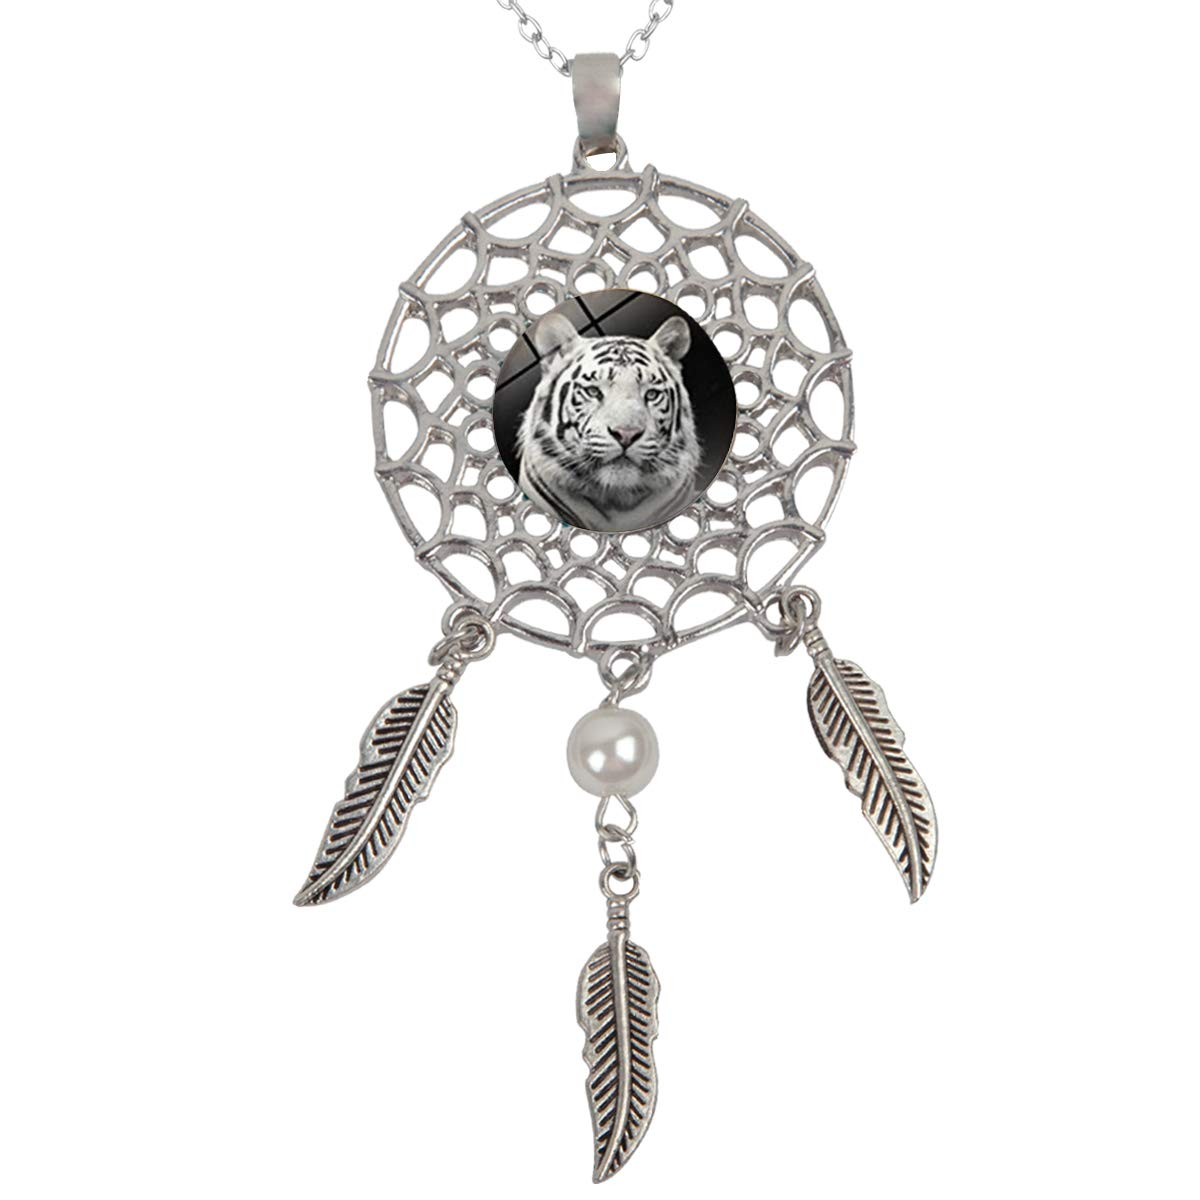 Artwork Store Womens Dreamcatcher Necklace White Tiger Pendant Dangling Feather Tassel Bead Charm Chain Fashion Jewelry